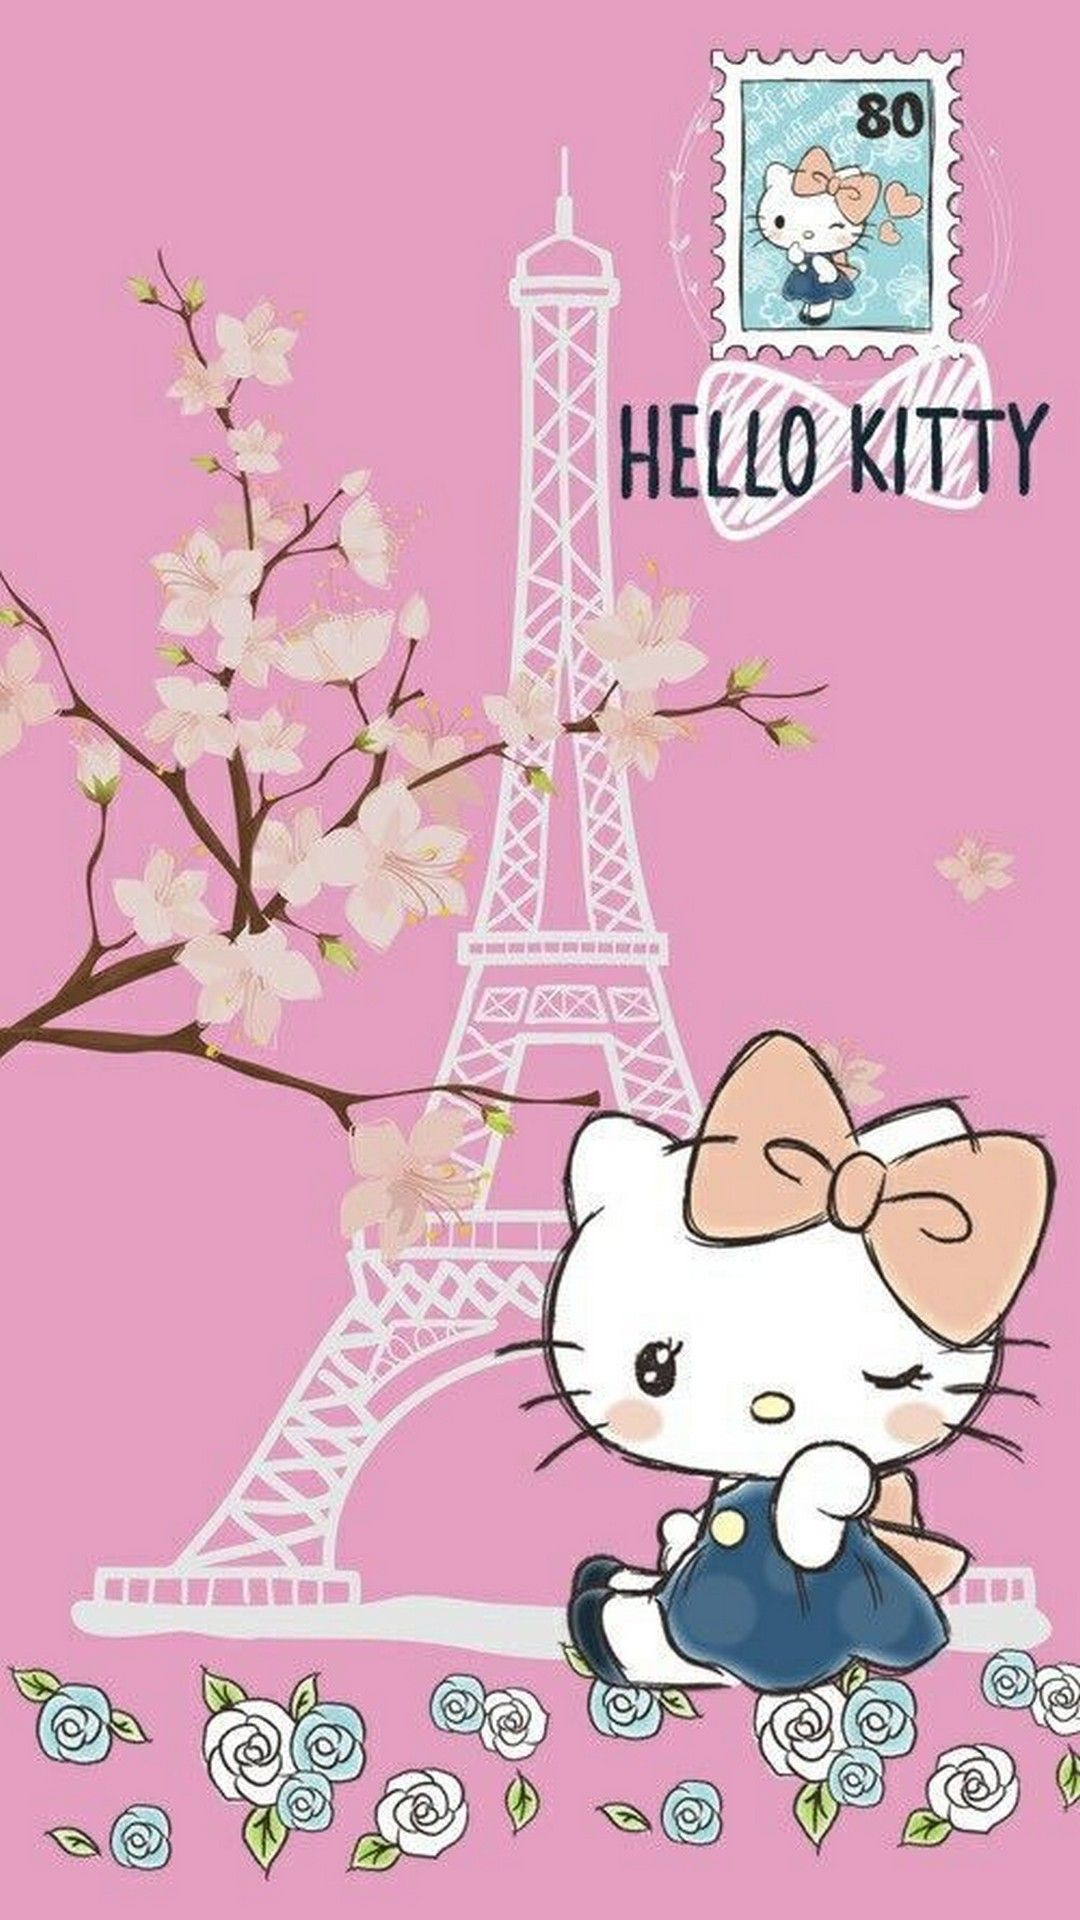 Android Wallpaper Hello Kitty Images Best Mobile Wallpaper